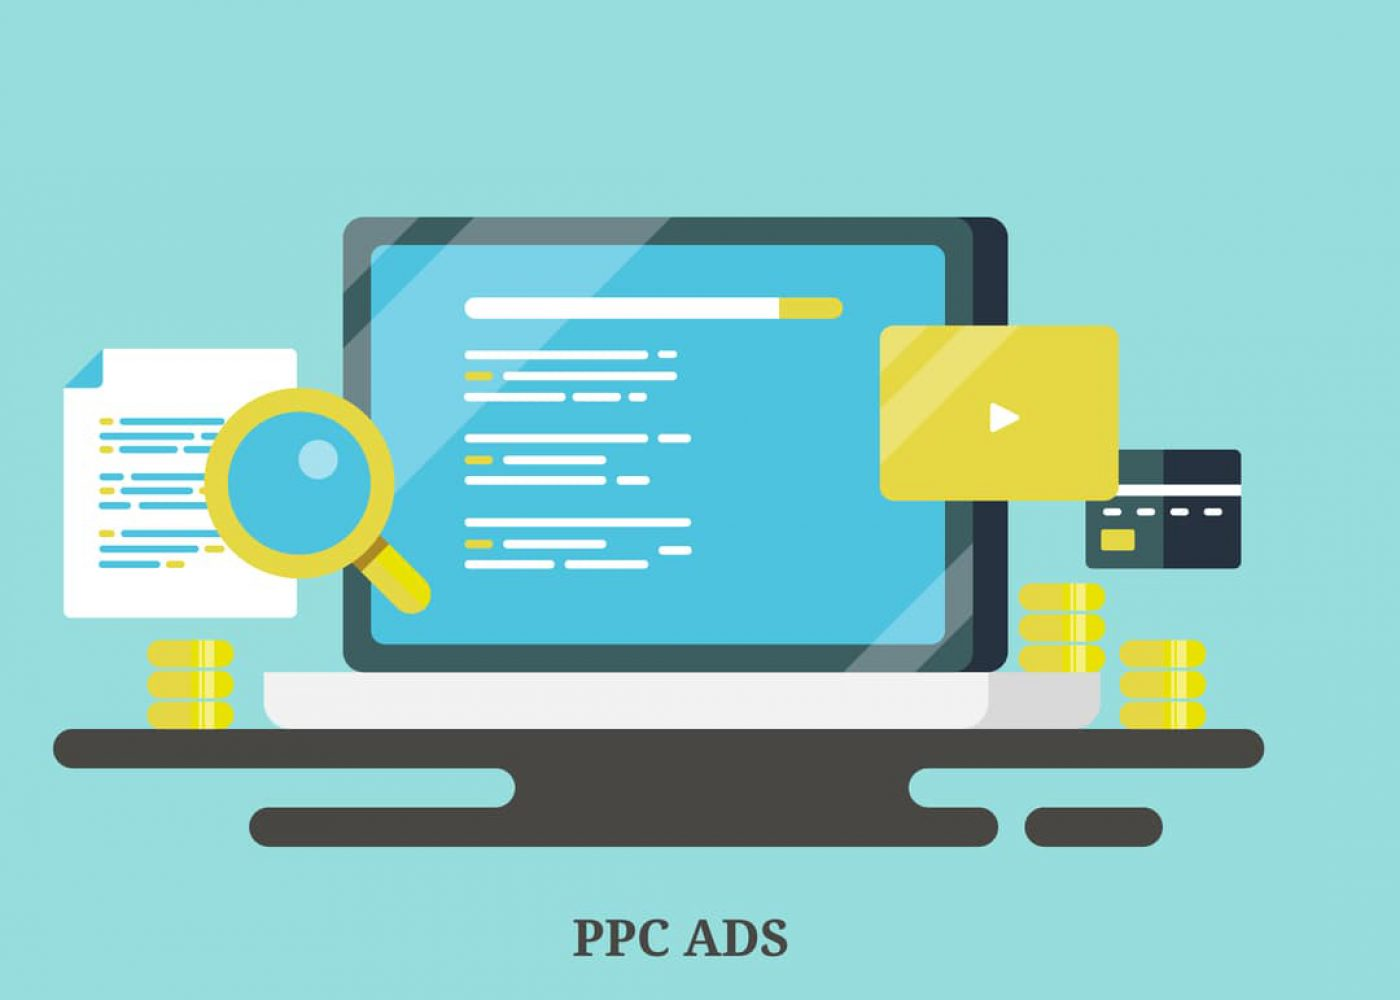 How does PPC work